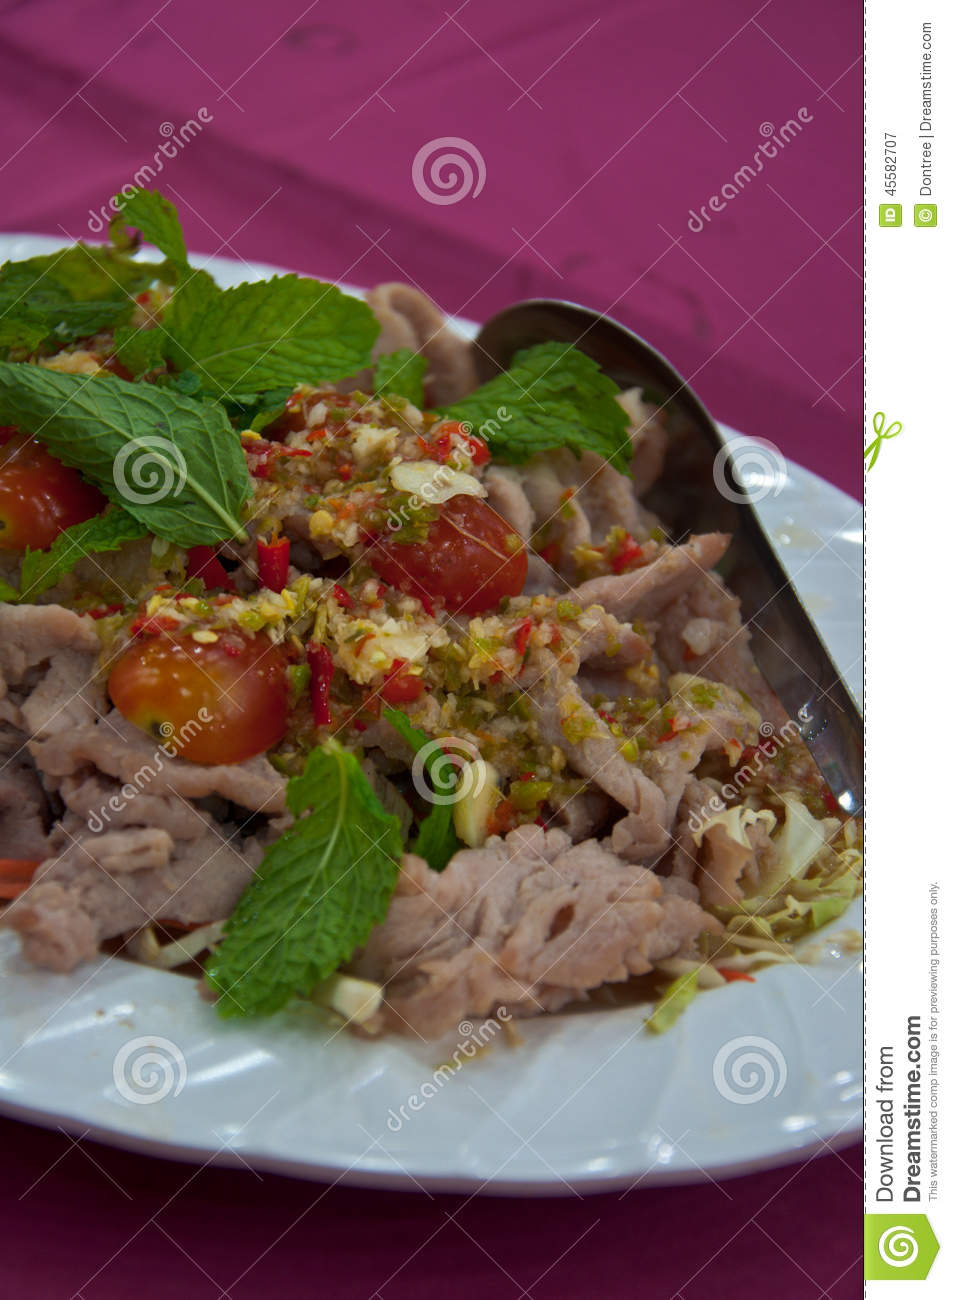 ... lemon - spicy with pork and lemon menu - yum spicy pork with lemon